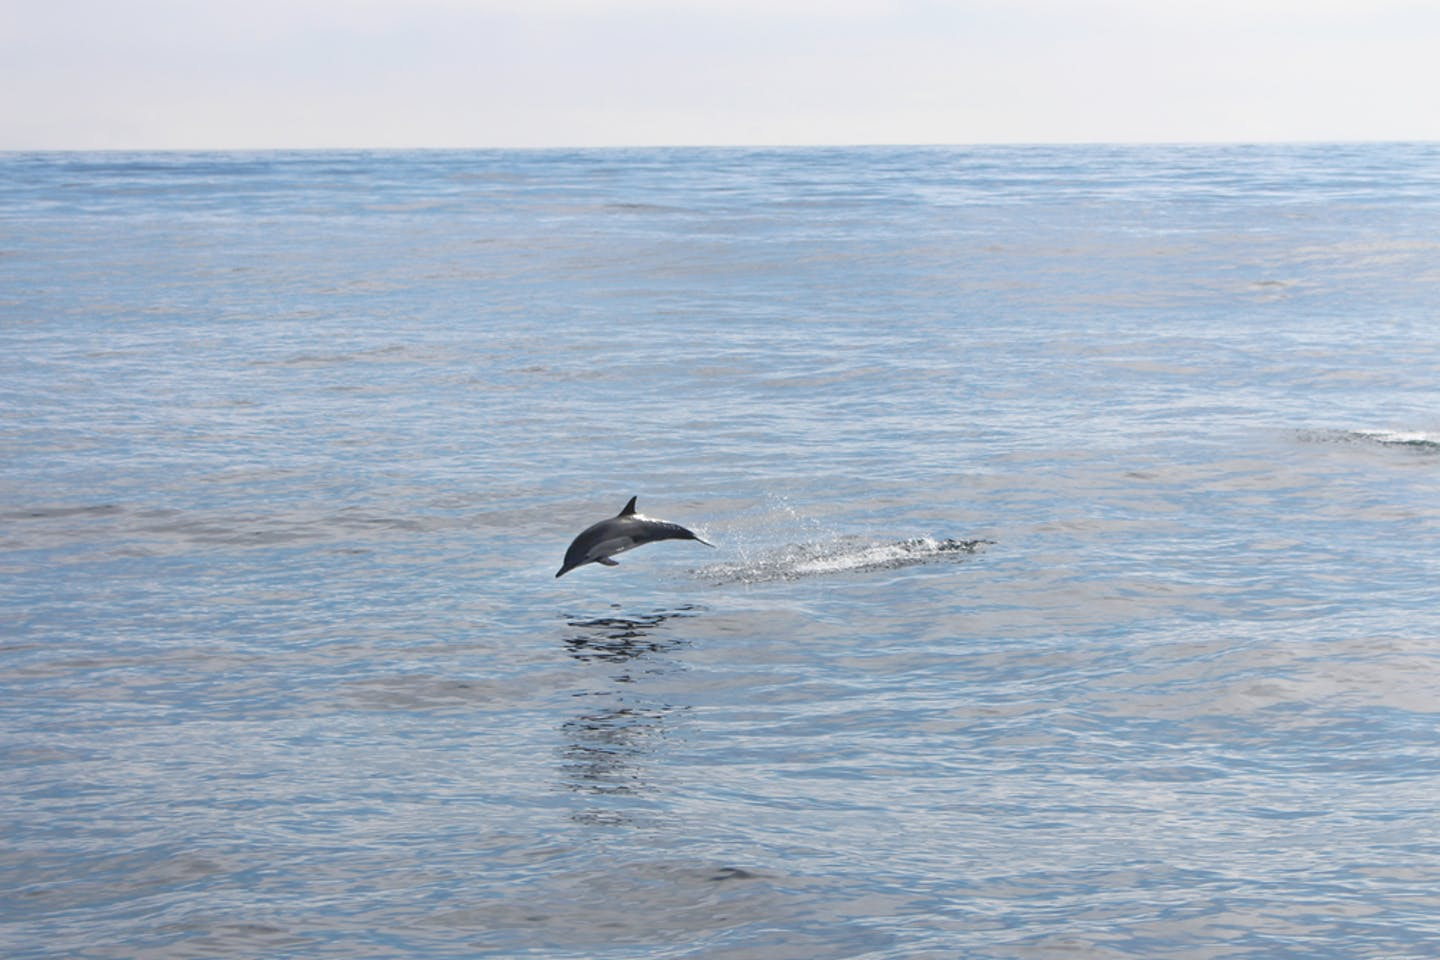 pacific ocean dolphin